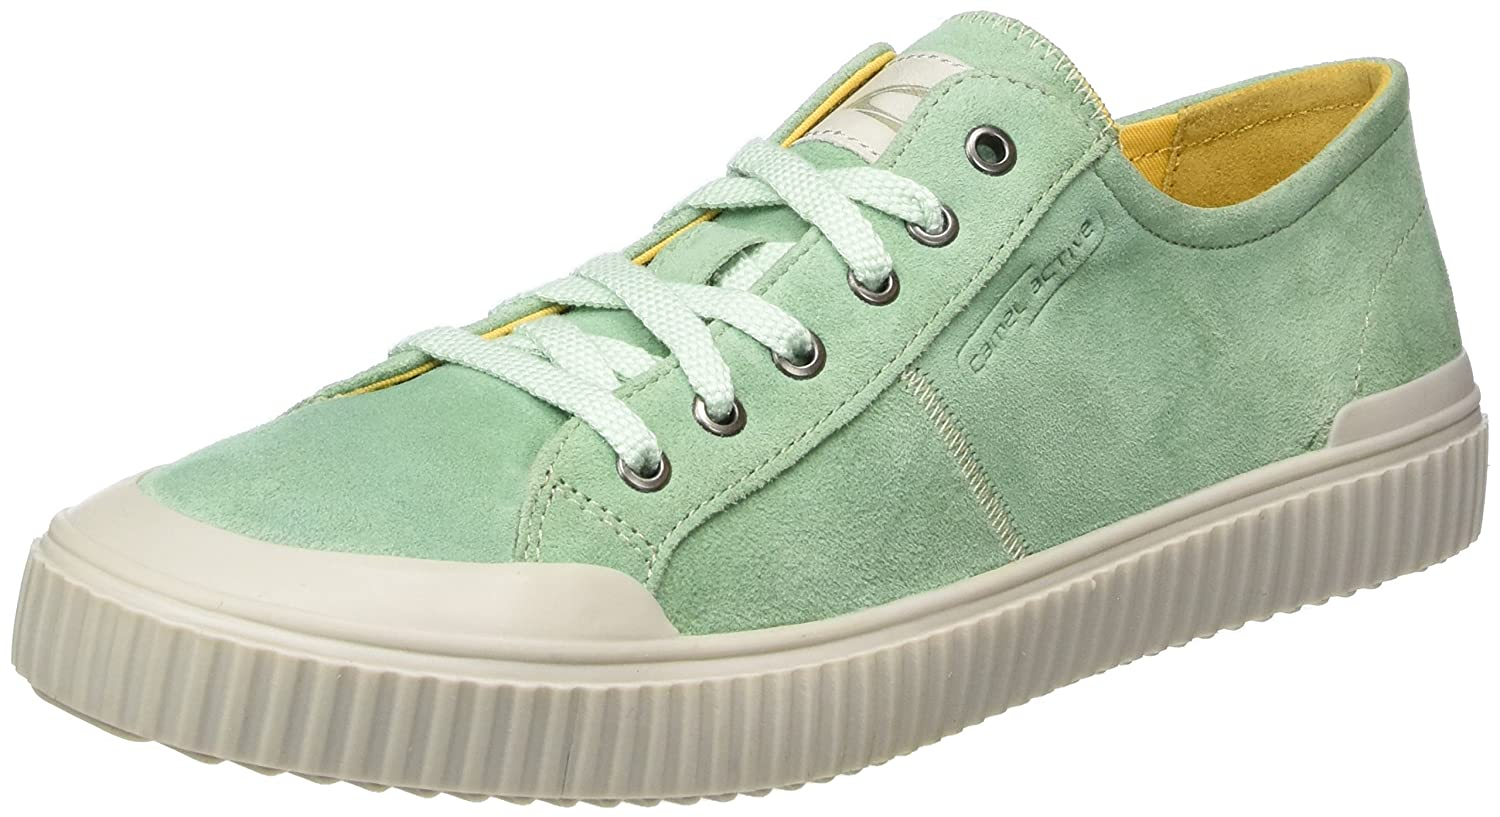 Camel active Damen Rail 70 Sneakers Grün (Mint 03)